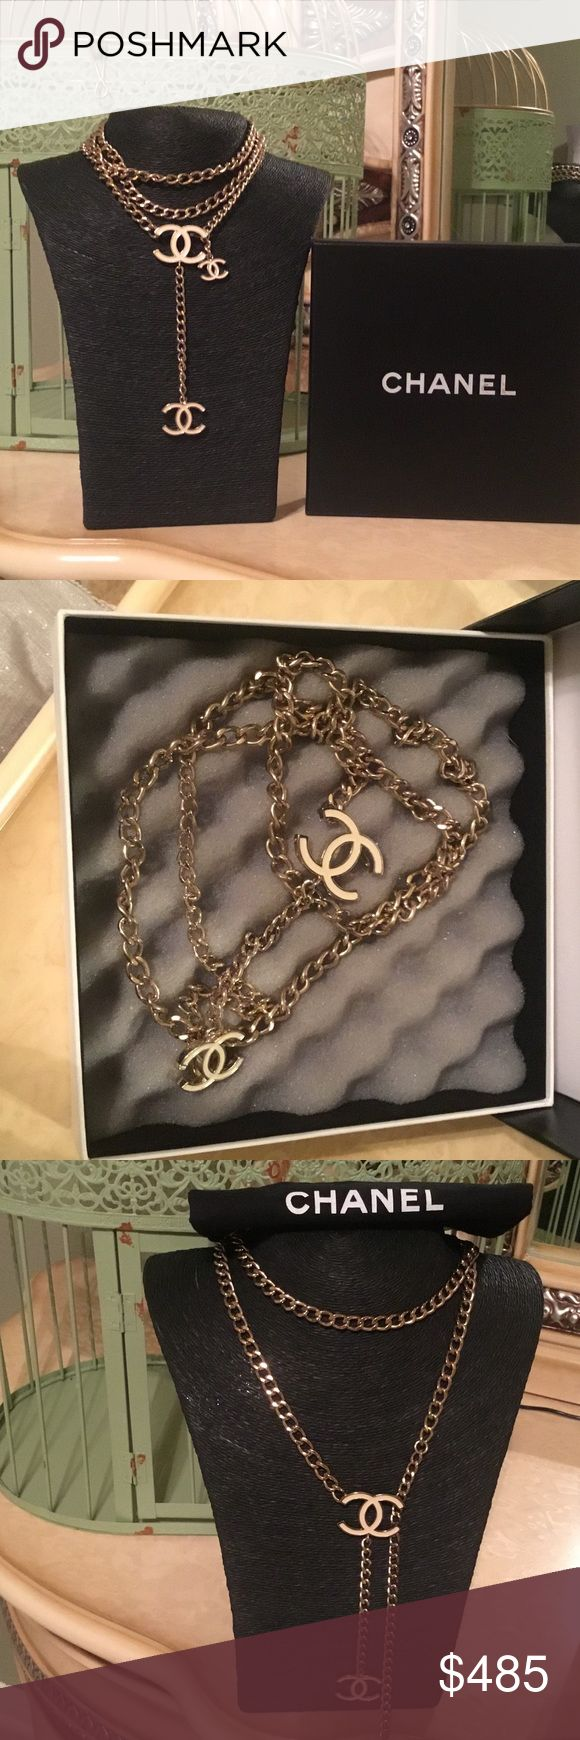 Authentic Gold & White Chanel Necklace/Belt Vintage Beautiful Chanel Necklace and can be used as a belt as well. CHANEL Jewelry Necklaces